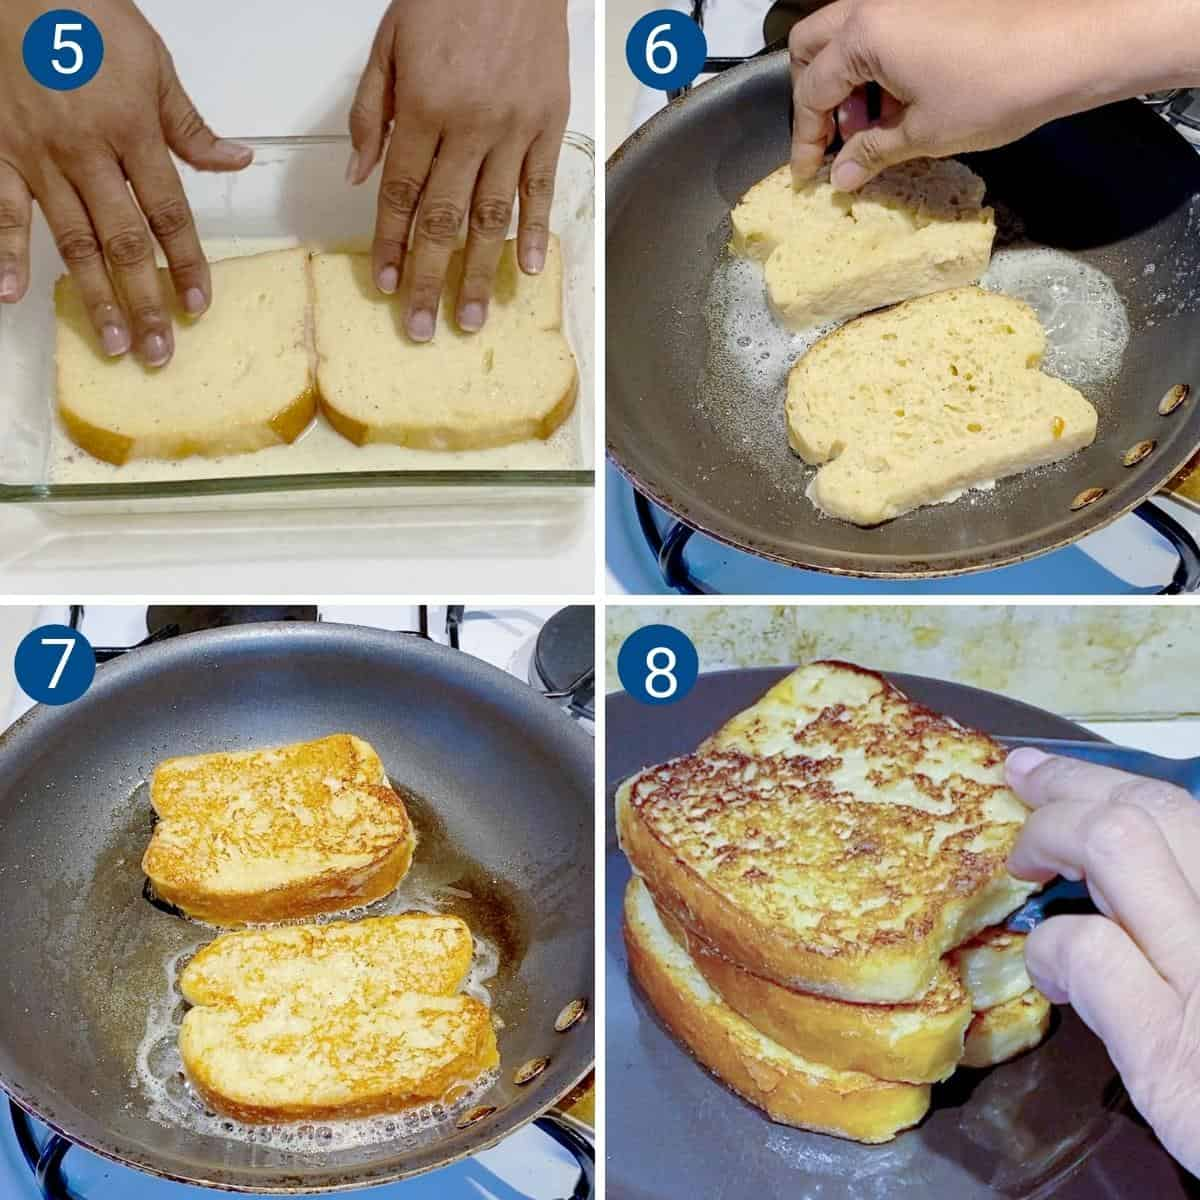 Progress pictures - soaking and cooking the French toast